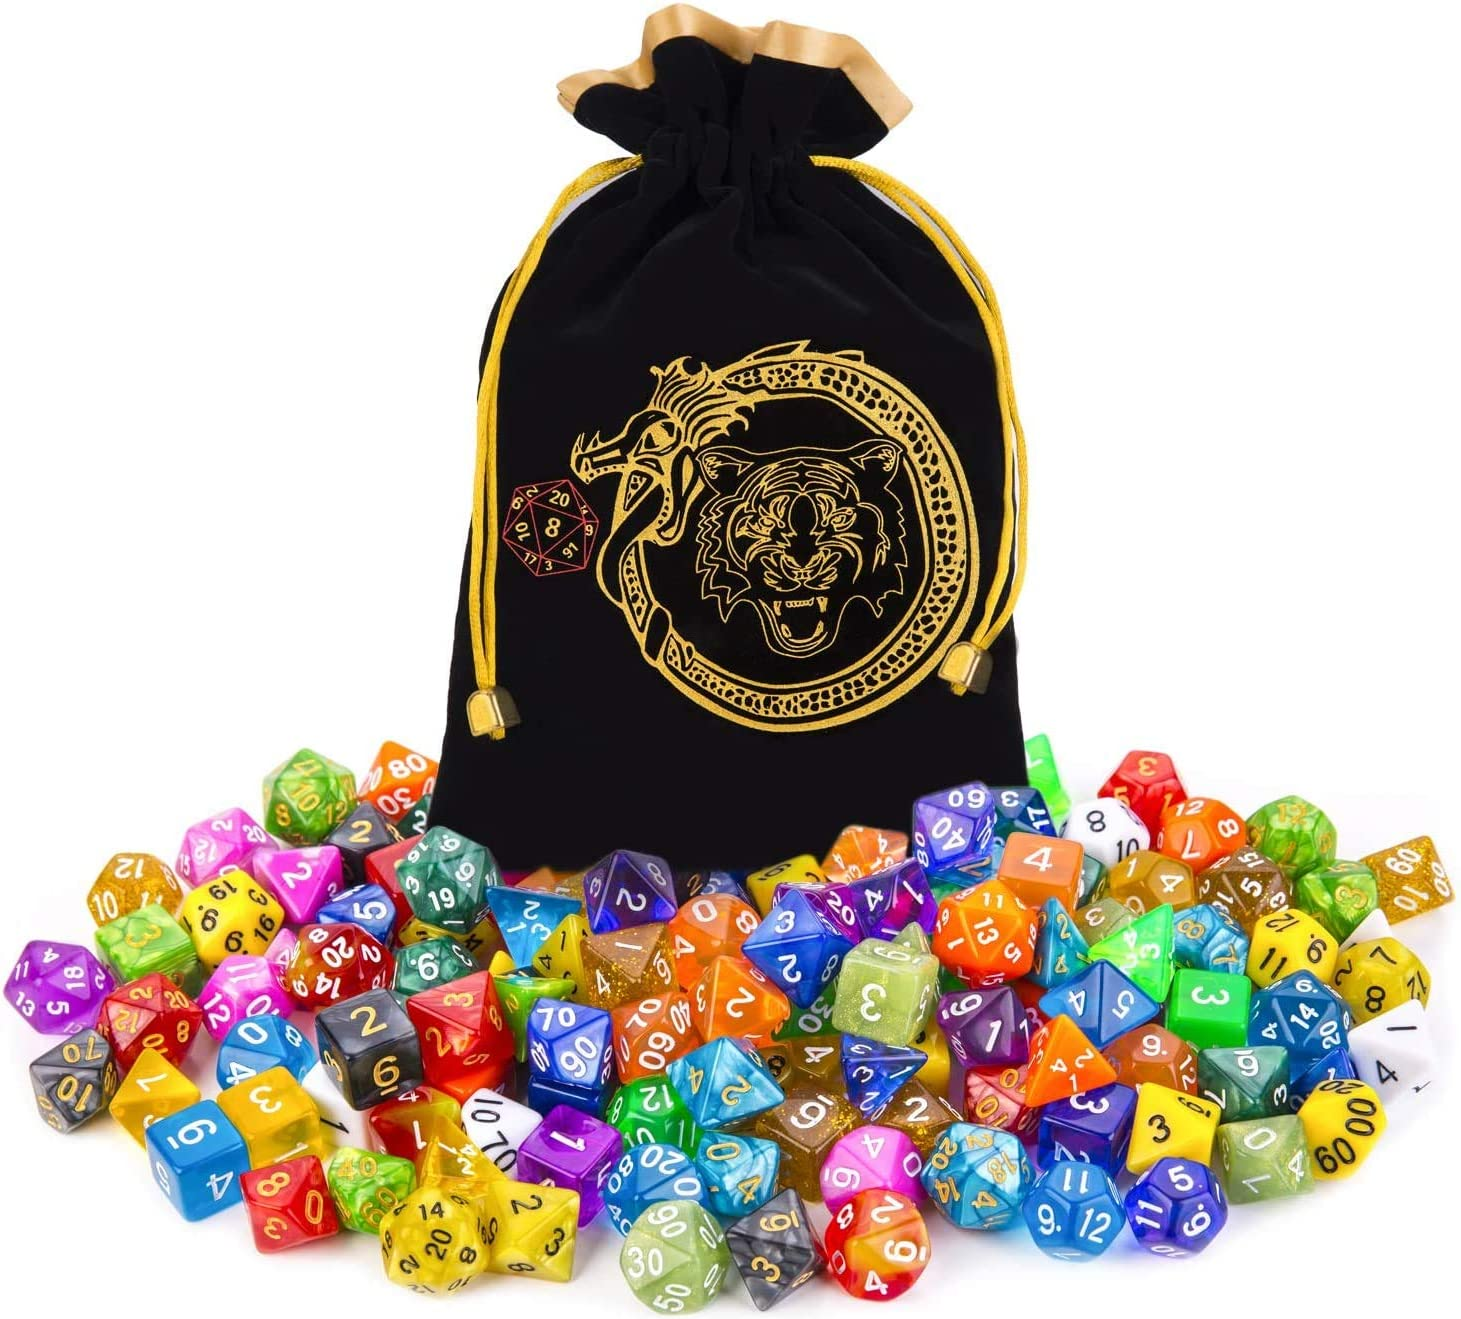 CiaraQ DND Dice Set 20 X 7 Polyhedral Dice (140pcs) with 1 Large Flannel Bag, D&D Dice ( D4 D6 D8 D10 D% D12 D20) for Dungeons and Dragons, RPG, MTG Table Games.